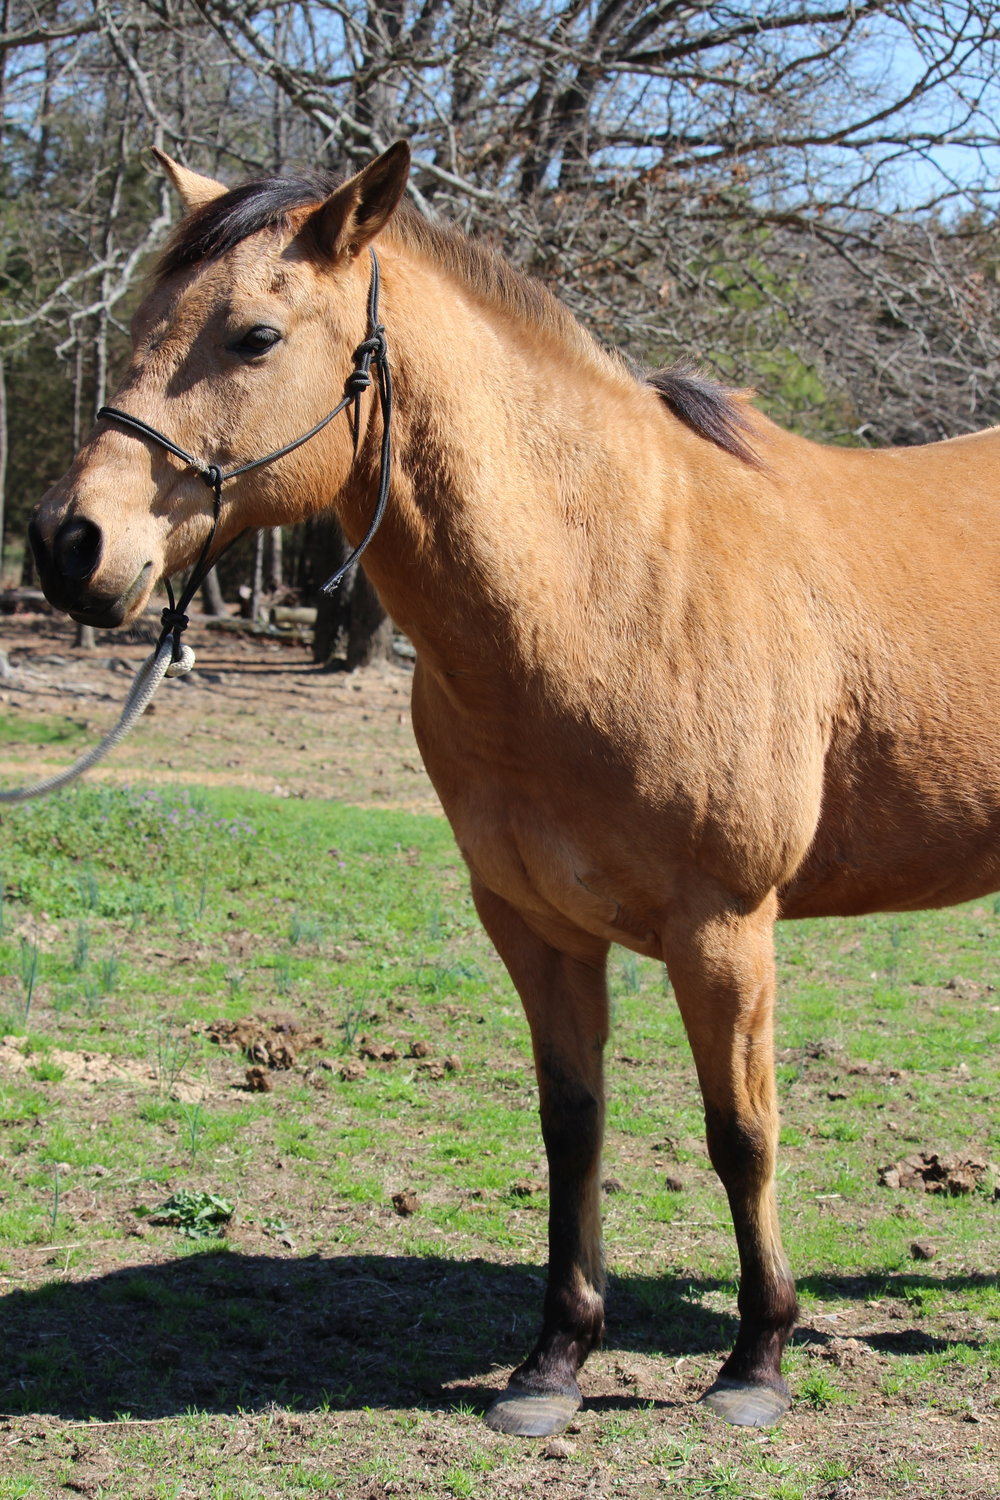 Max is a 12 year-old Quarter Horse who was kindly free-leased to us by Ms. Sydney McAllister. He has a very sweet and calm personality and works great with our kids. Every time he is gotten out of the pasture, he gives you his undivided attention and his best behavior.    Max has been a great edition to our program and we are very thankful to have him.